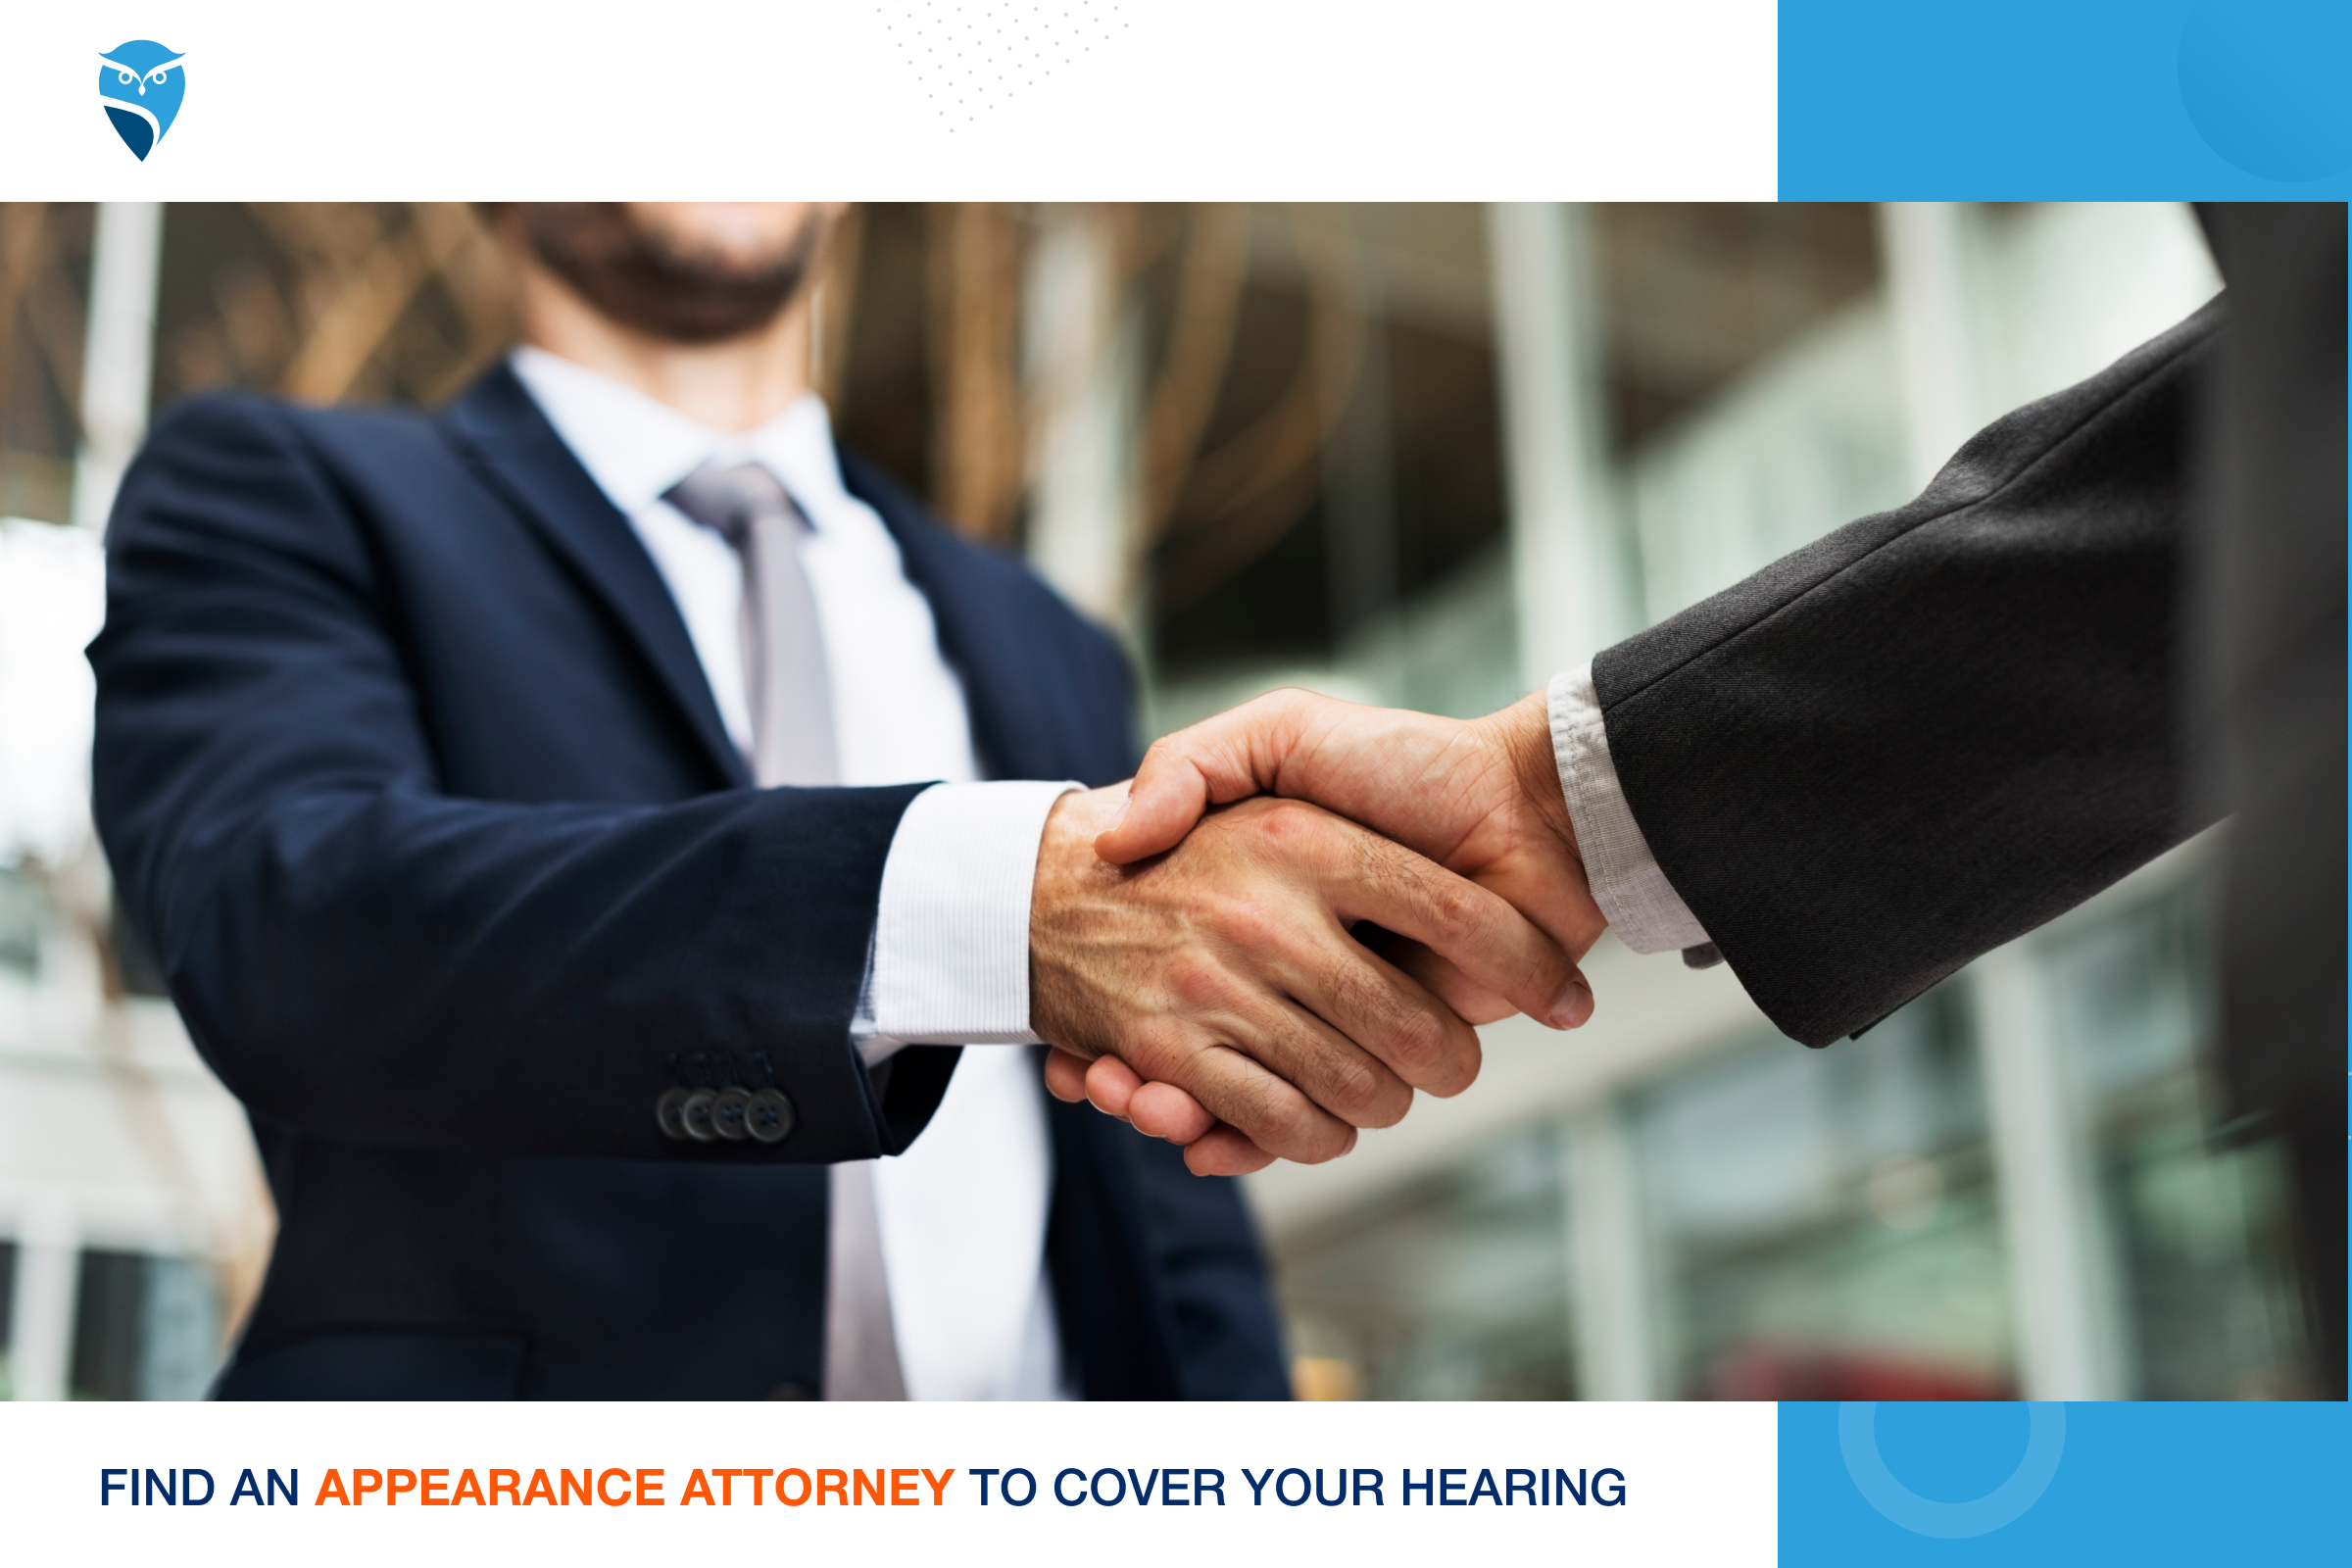 Find an Appearance Attorney to Cover your Hearing